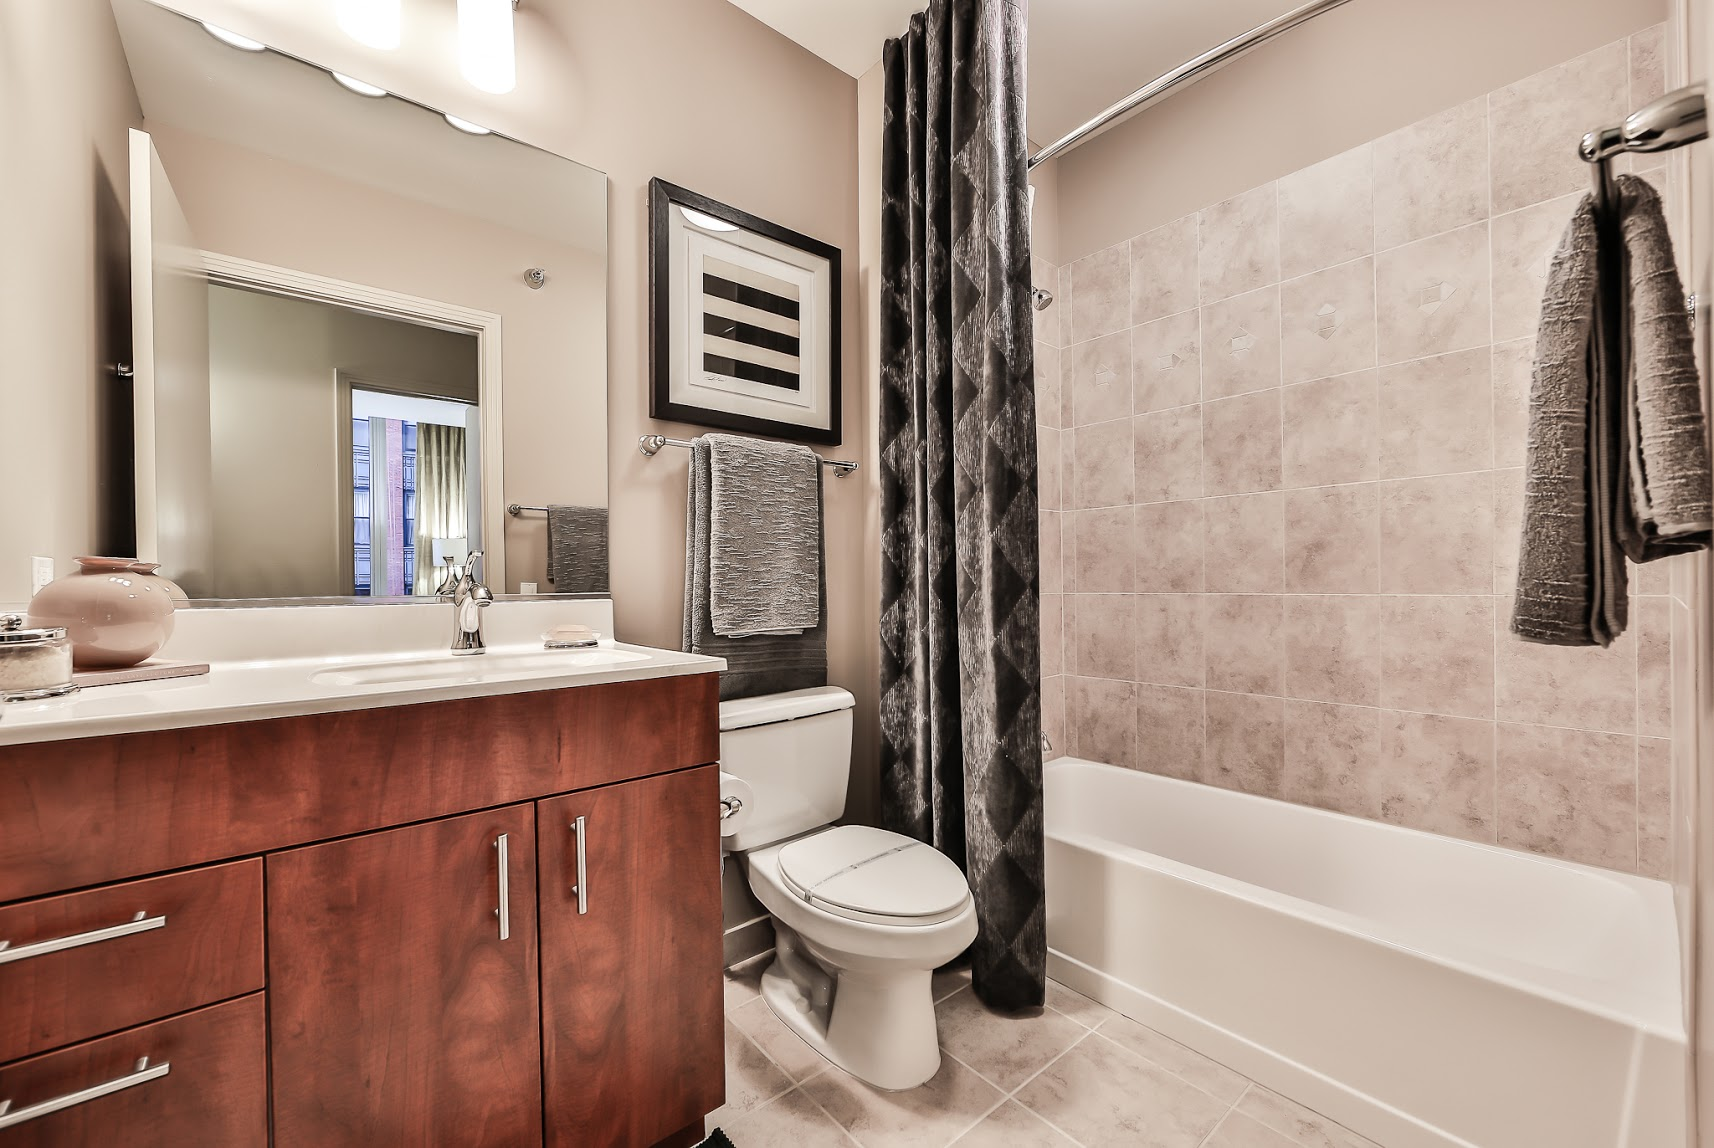 215 w washington T-05 2 bed bathroom 1.jpg